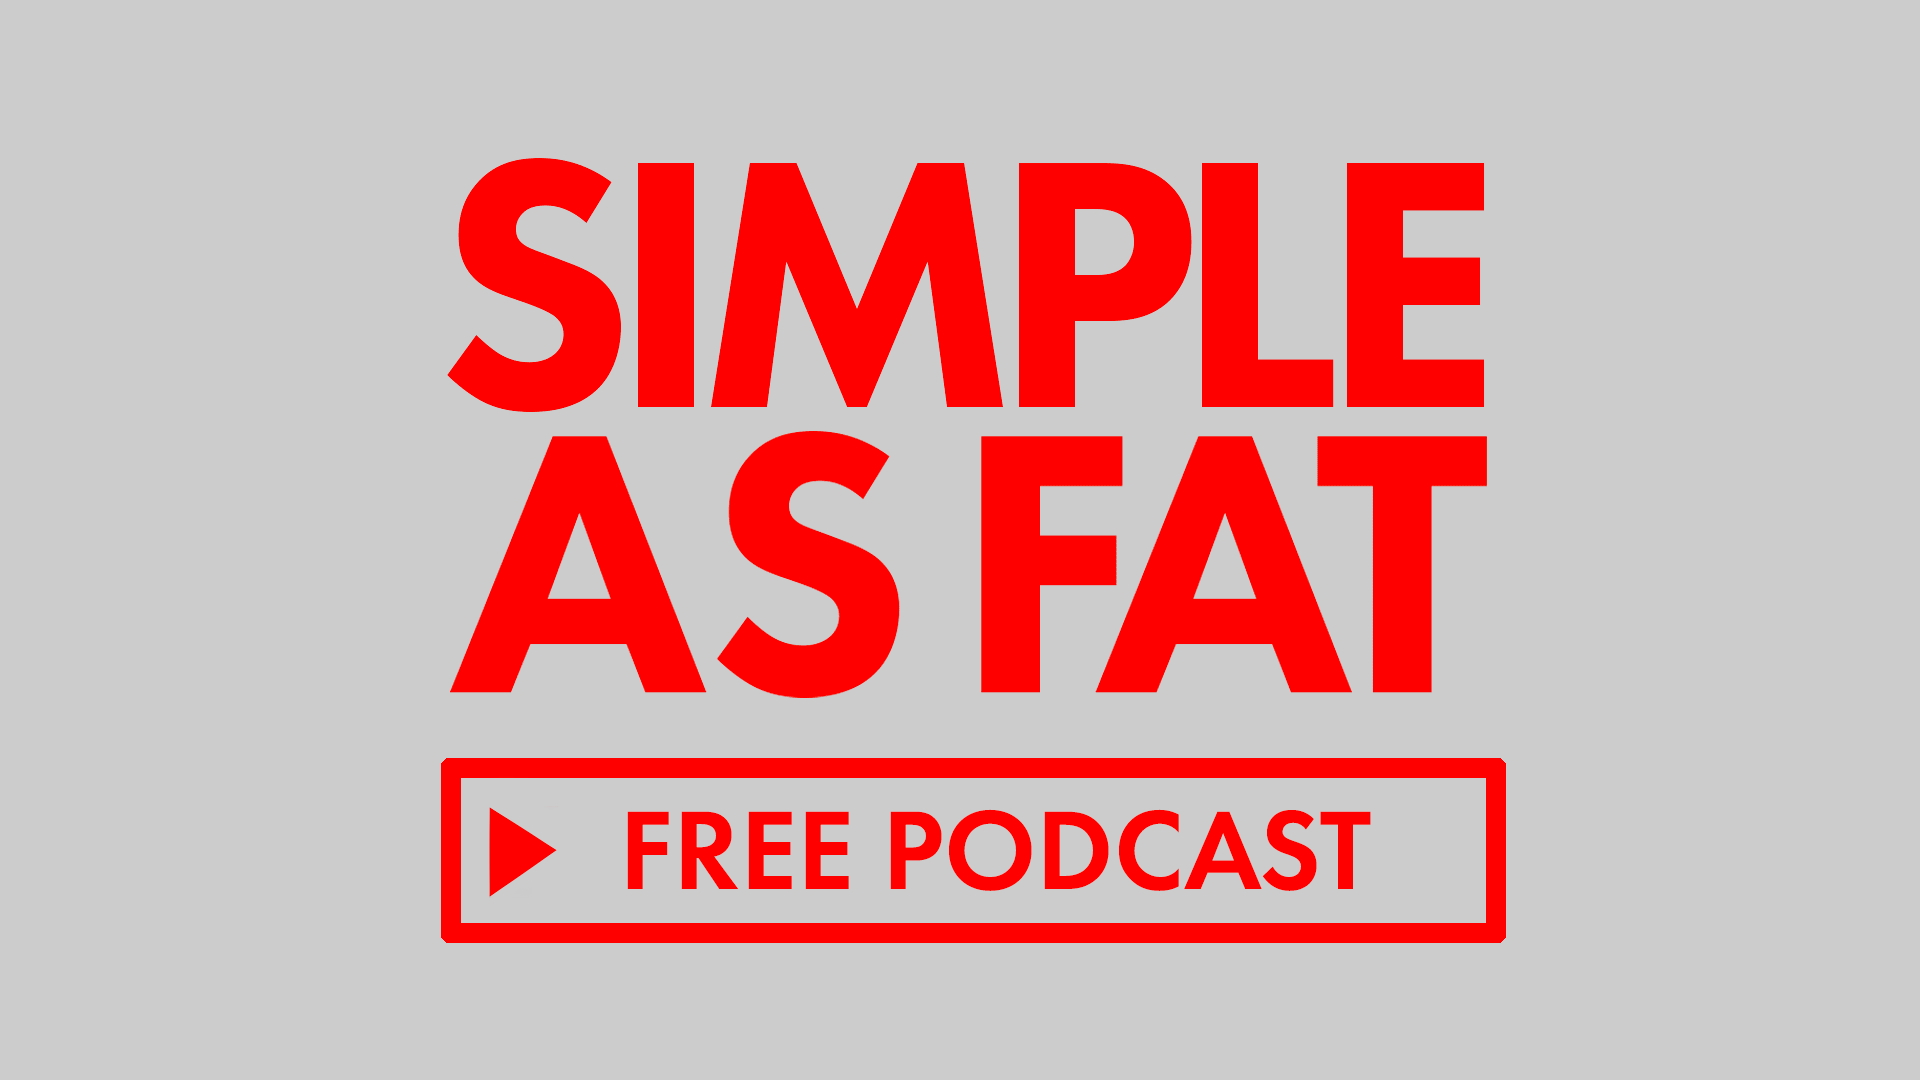 Has Simple as Fat #LCHF cured Jon Gaunt's deafness?